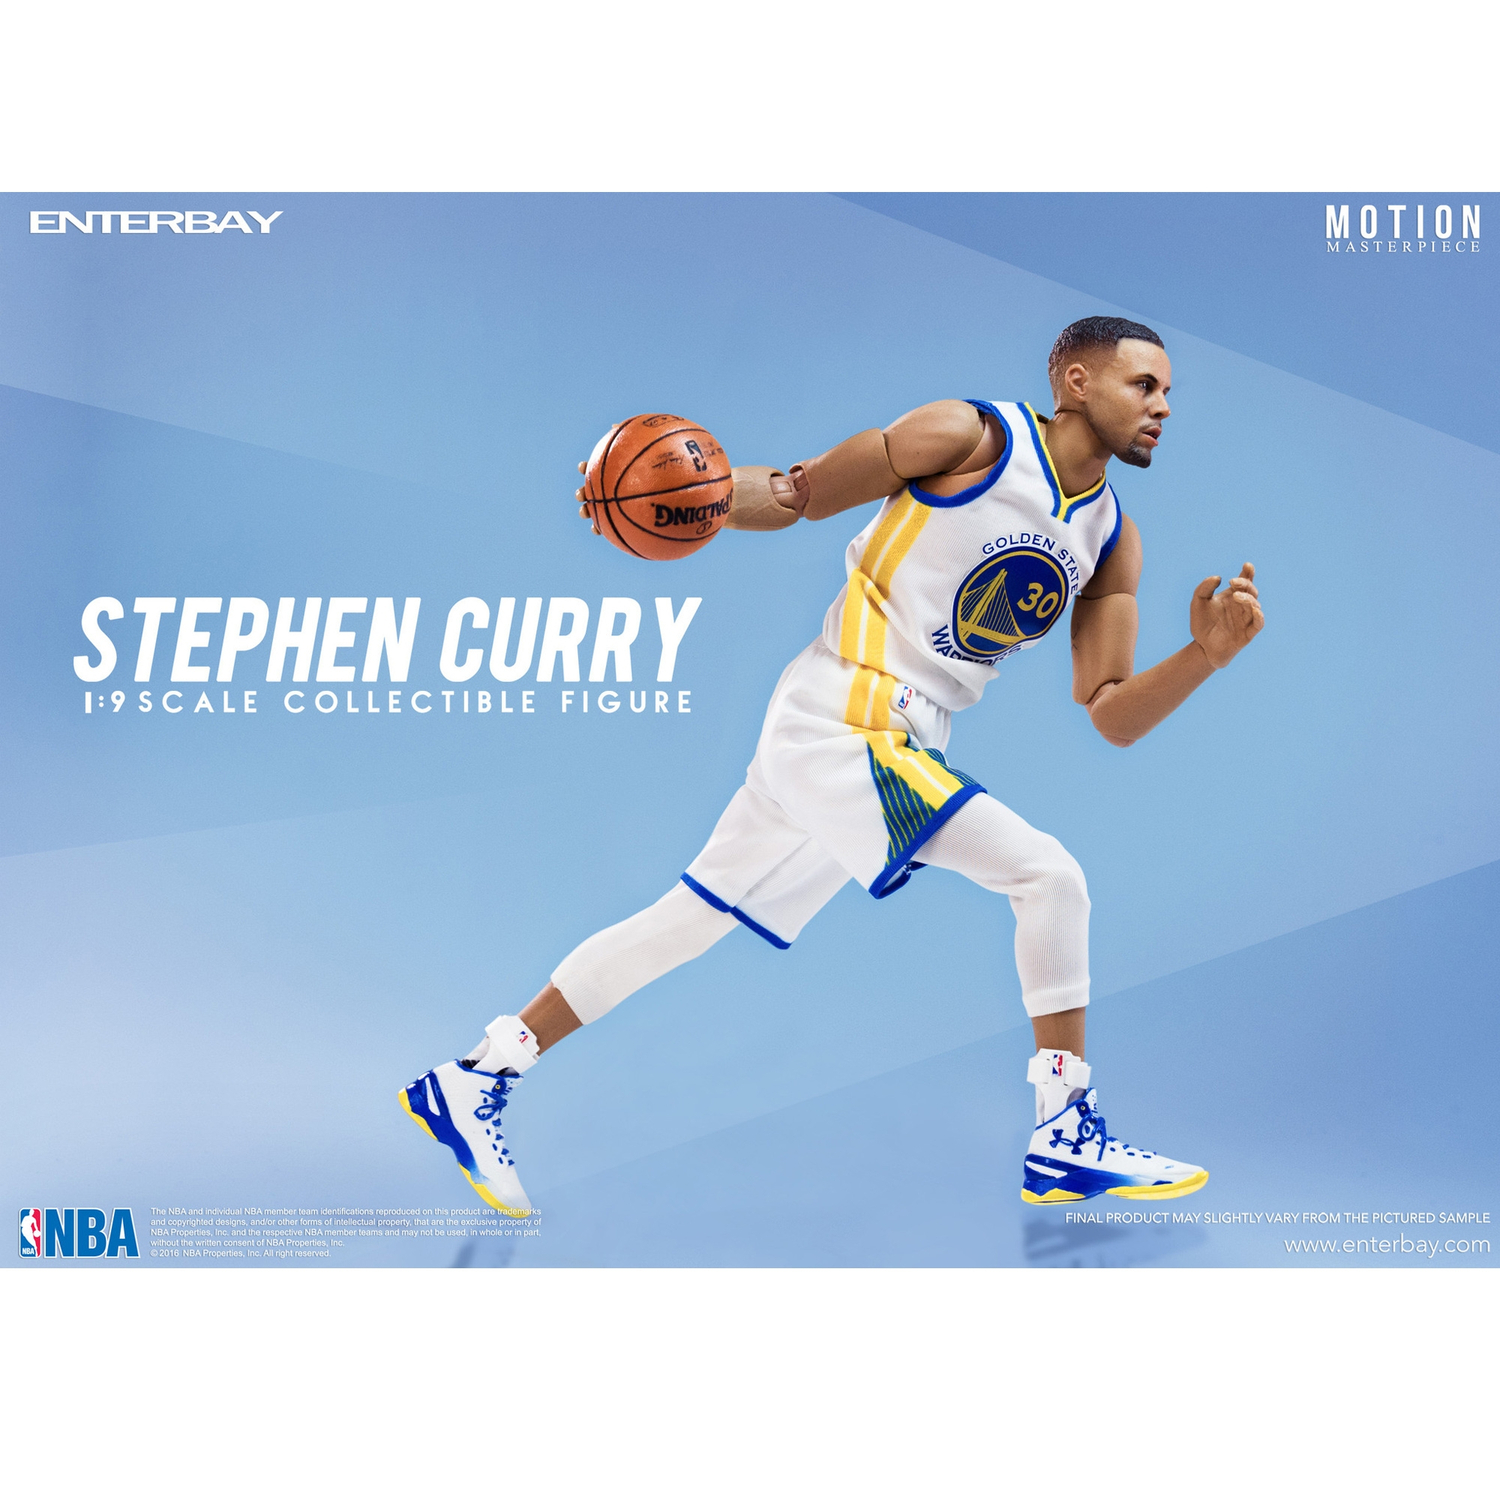 6ffc92a02b41 Enterbay X 1 9 Real Masterpiece NBA Stephen Curry Action Figures Figurine  Collection MM-1201 (Gift Idea) - Walmart.com